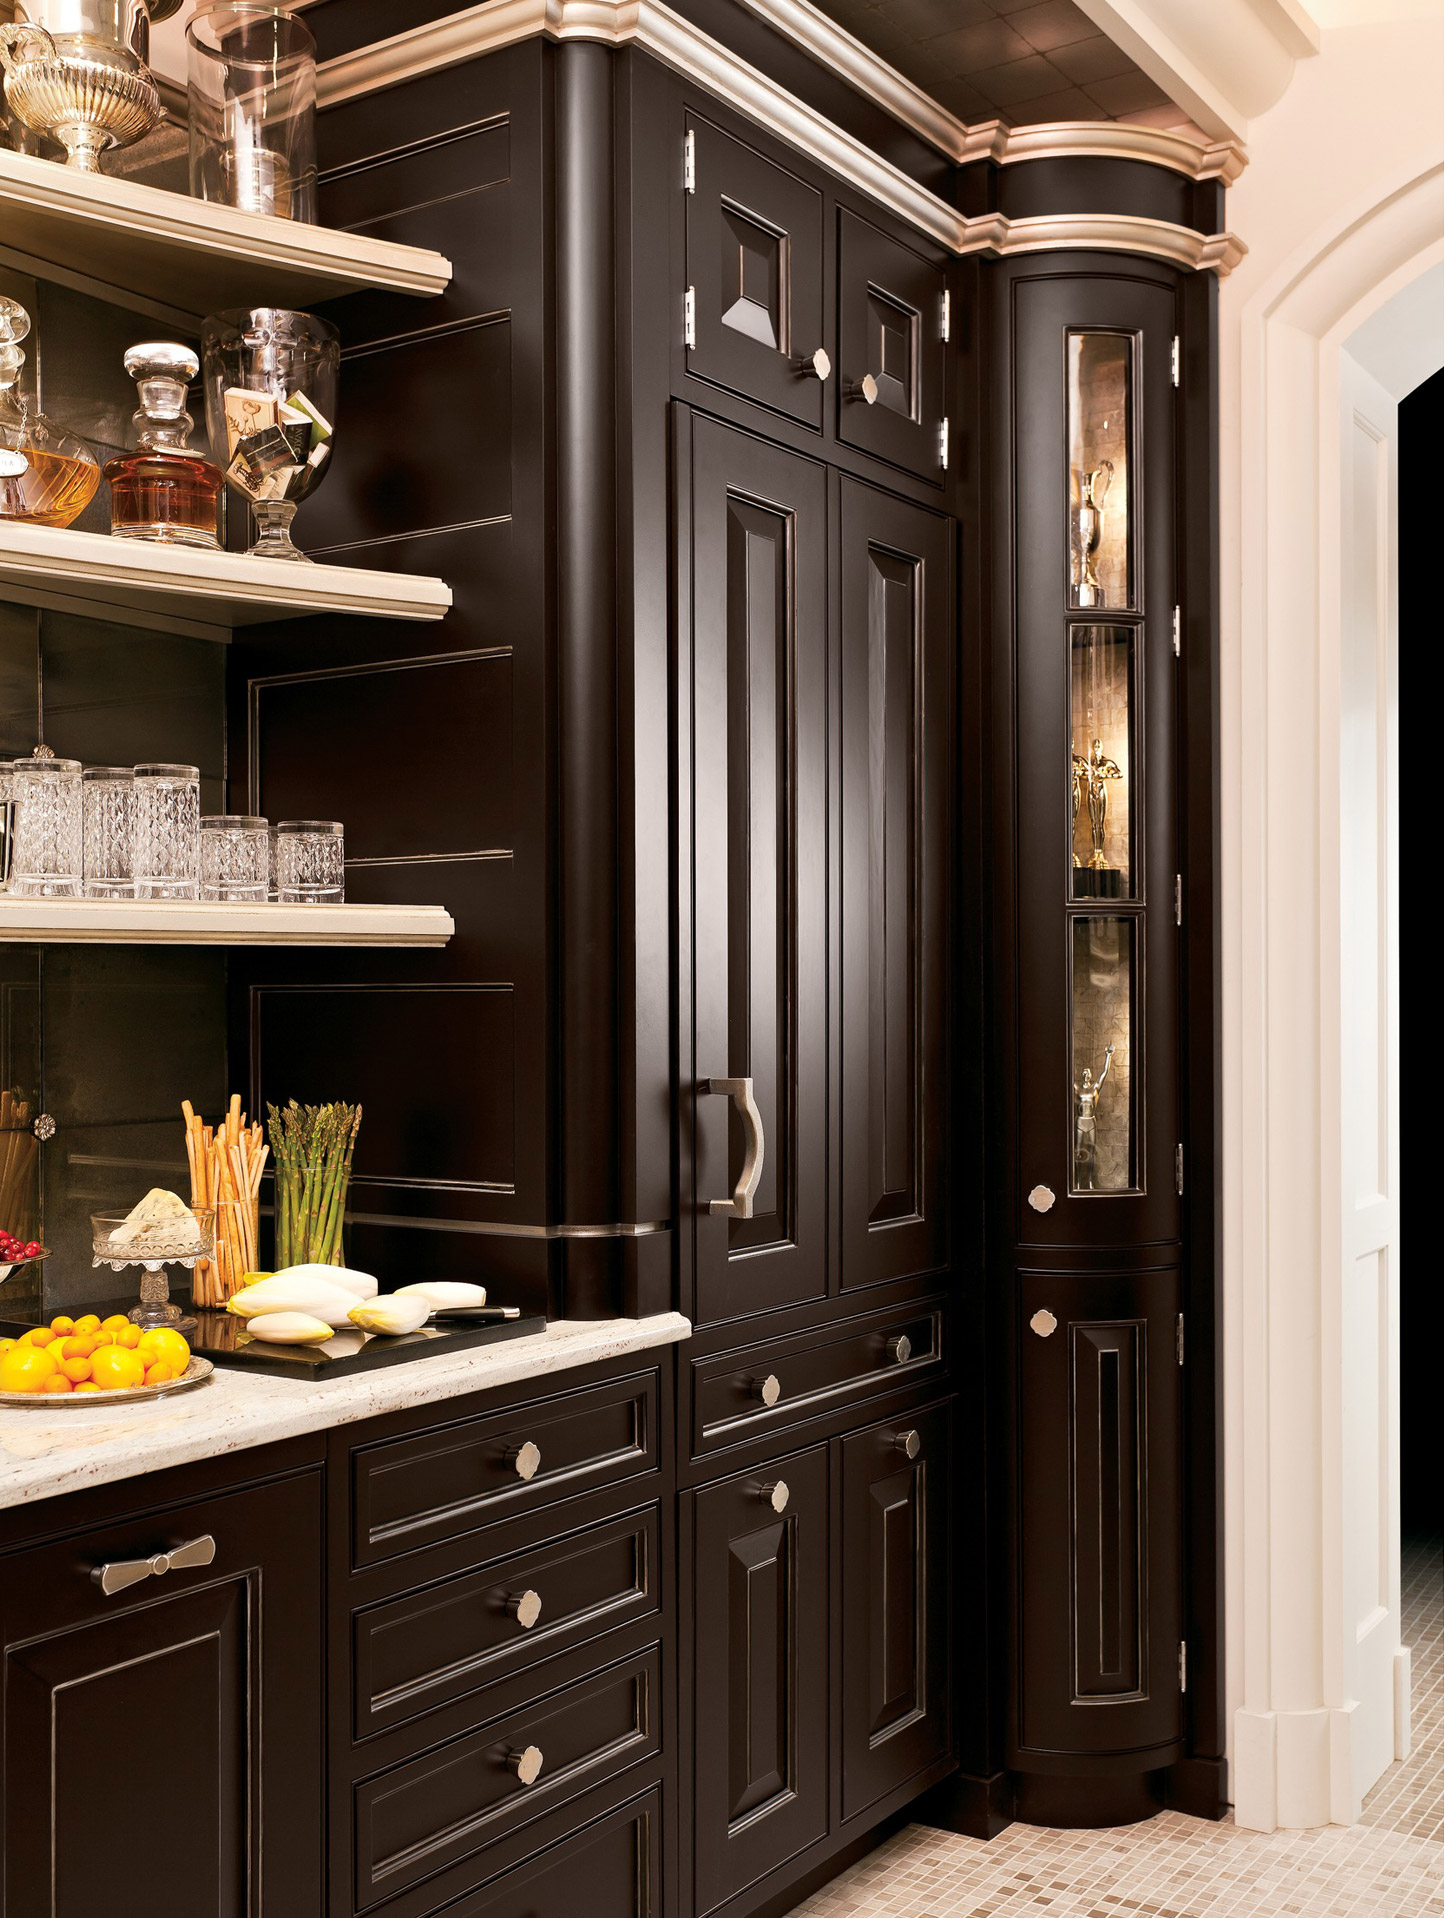 Order Stainless Steel European Or Professional Style Panels From Monogram A Custom Panel Handle Your Cabinet Maker Refrigerator Styling